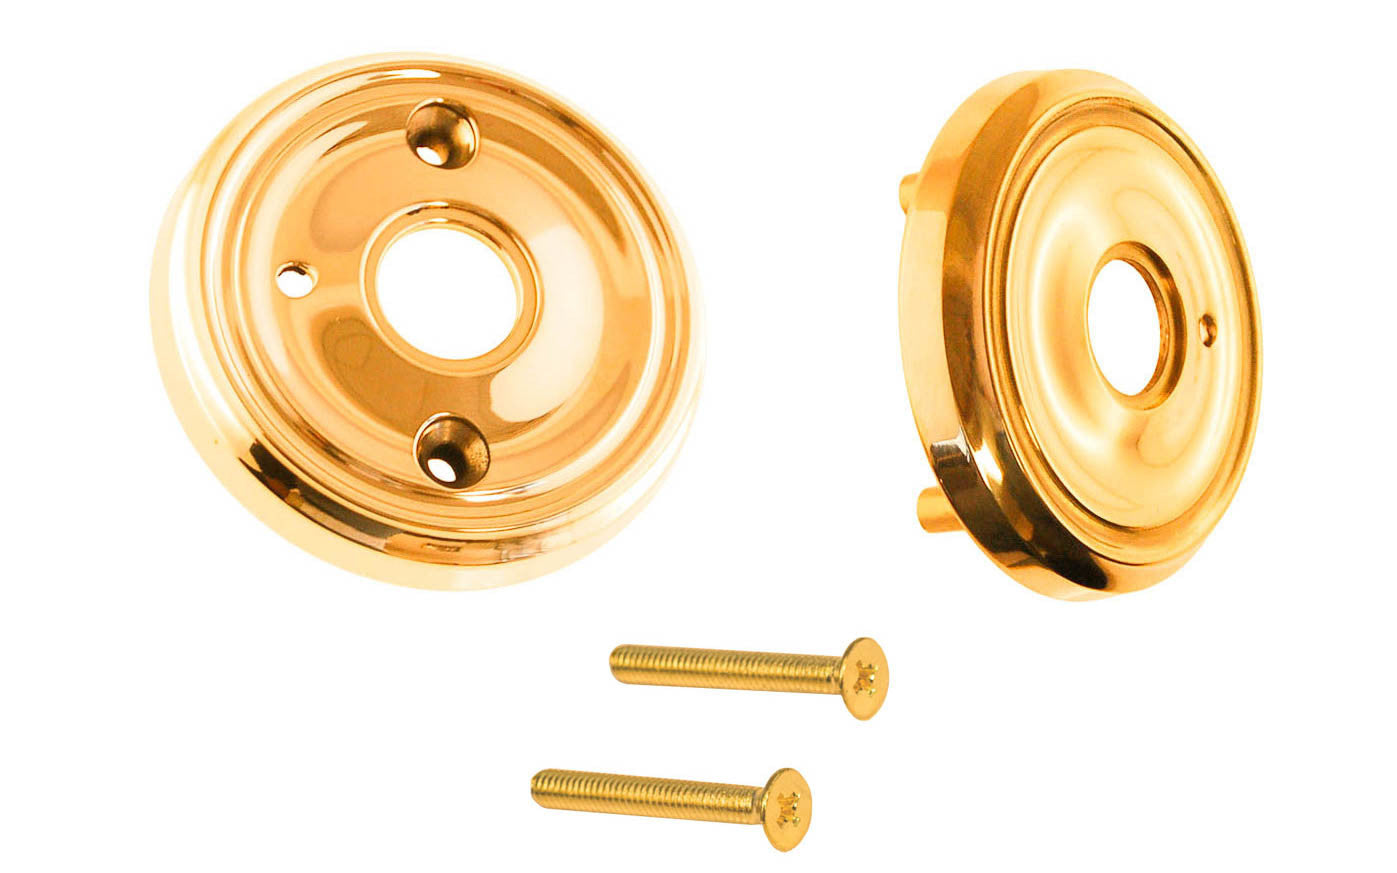 Classic Solid Brass Rosette Set ~ Privacy (Locking) ~ Non-Lacquered Brass (will patina naturally over time)